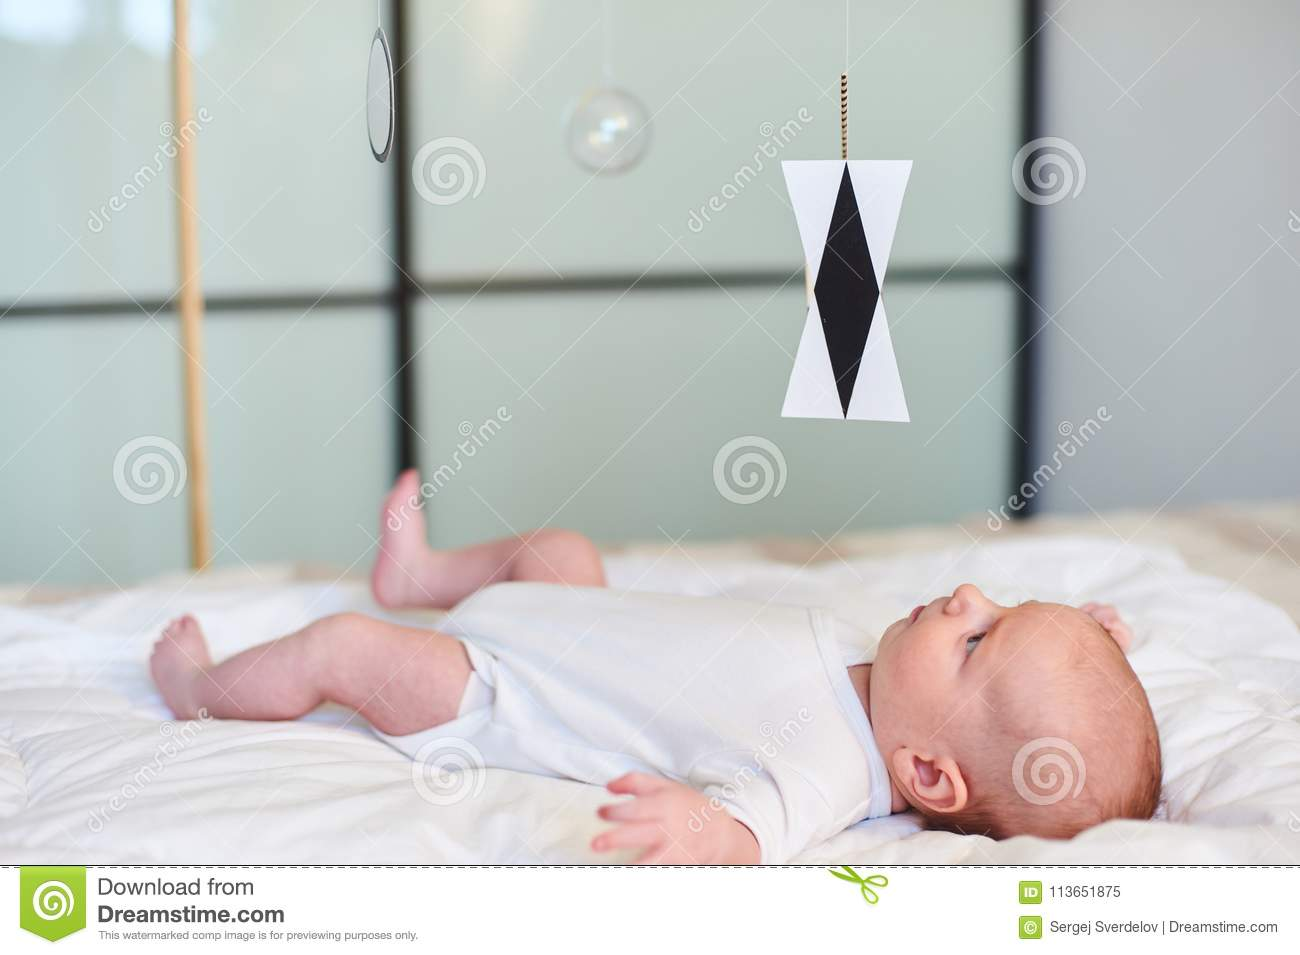 Adorable baby boy in white sunny bedroom lying and looks at Munari Montessori mobile.